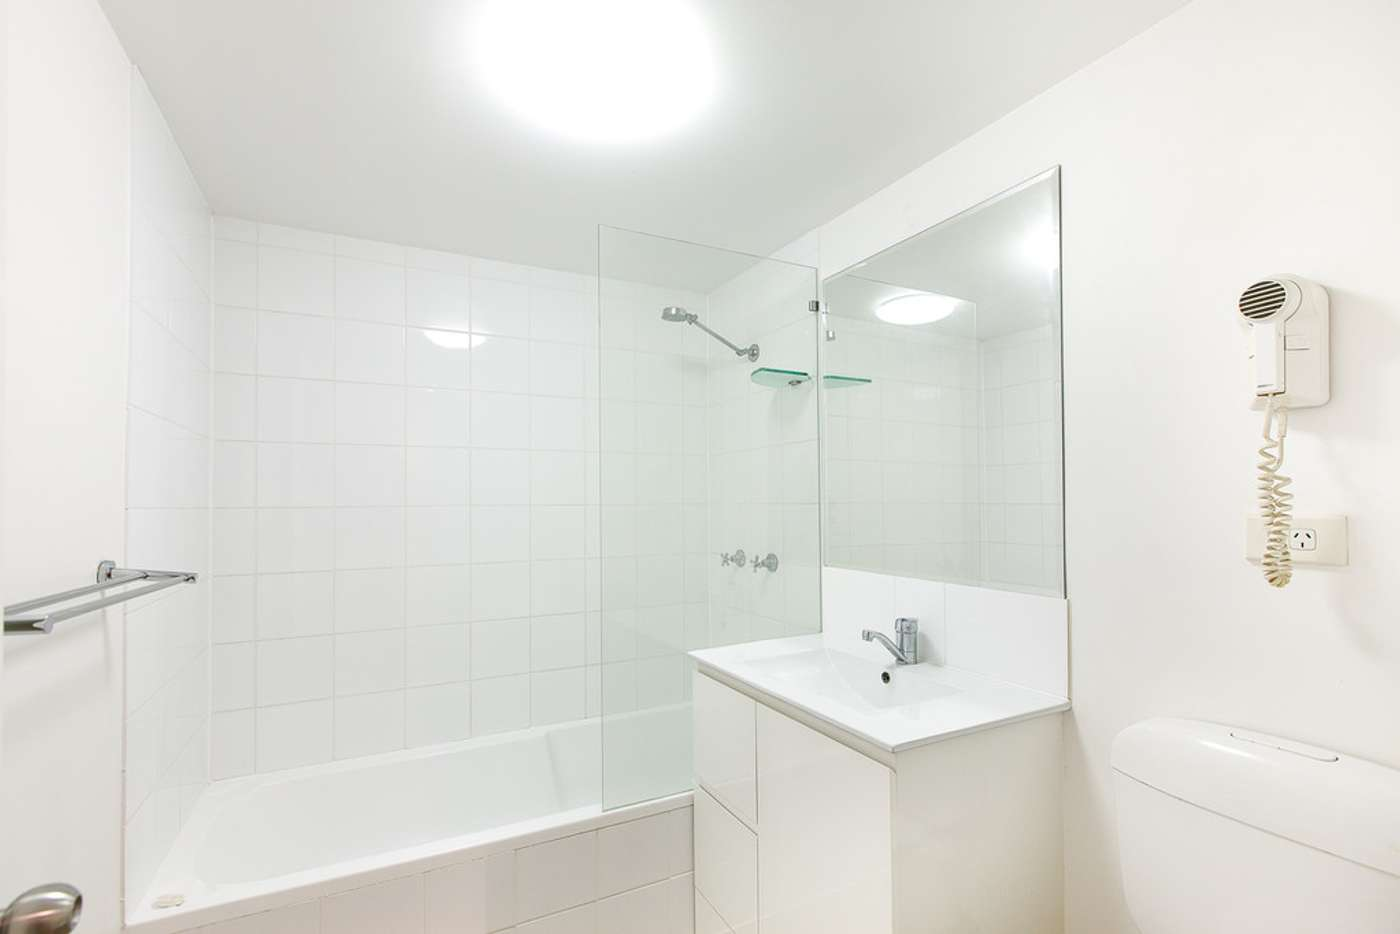 Sixth view of Homely apartment listing, 85 Deakin Street,,, Kangaroo Point QLD 4169